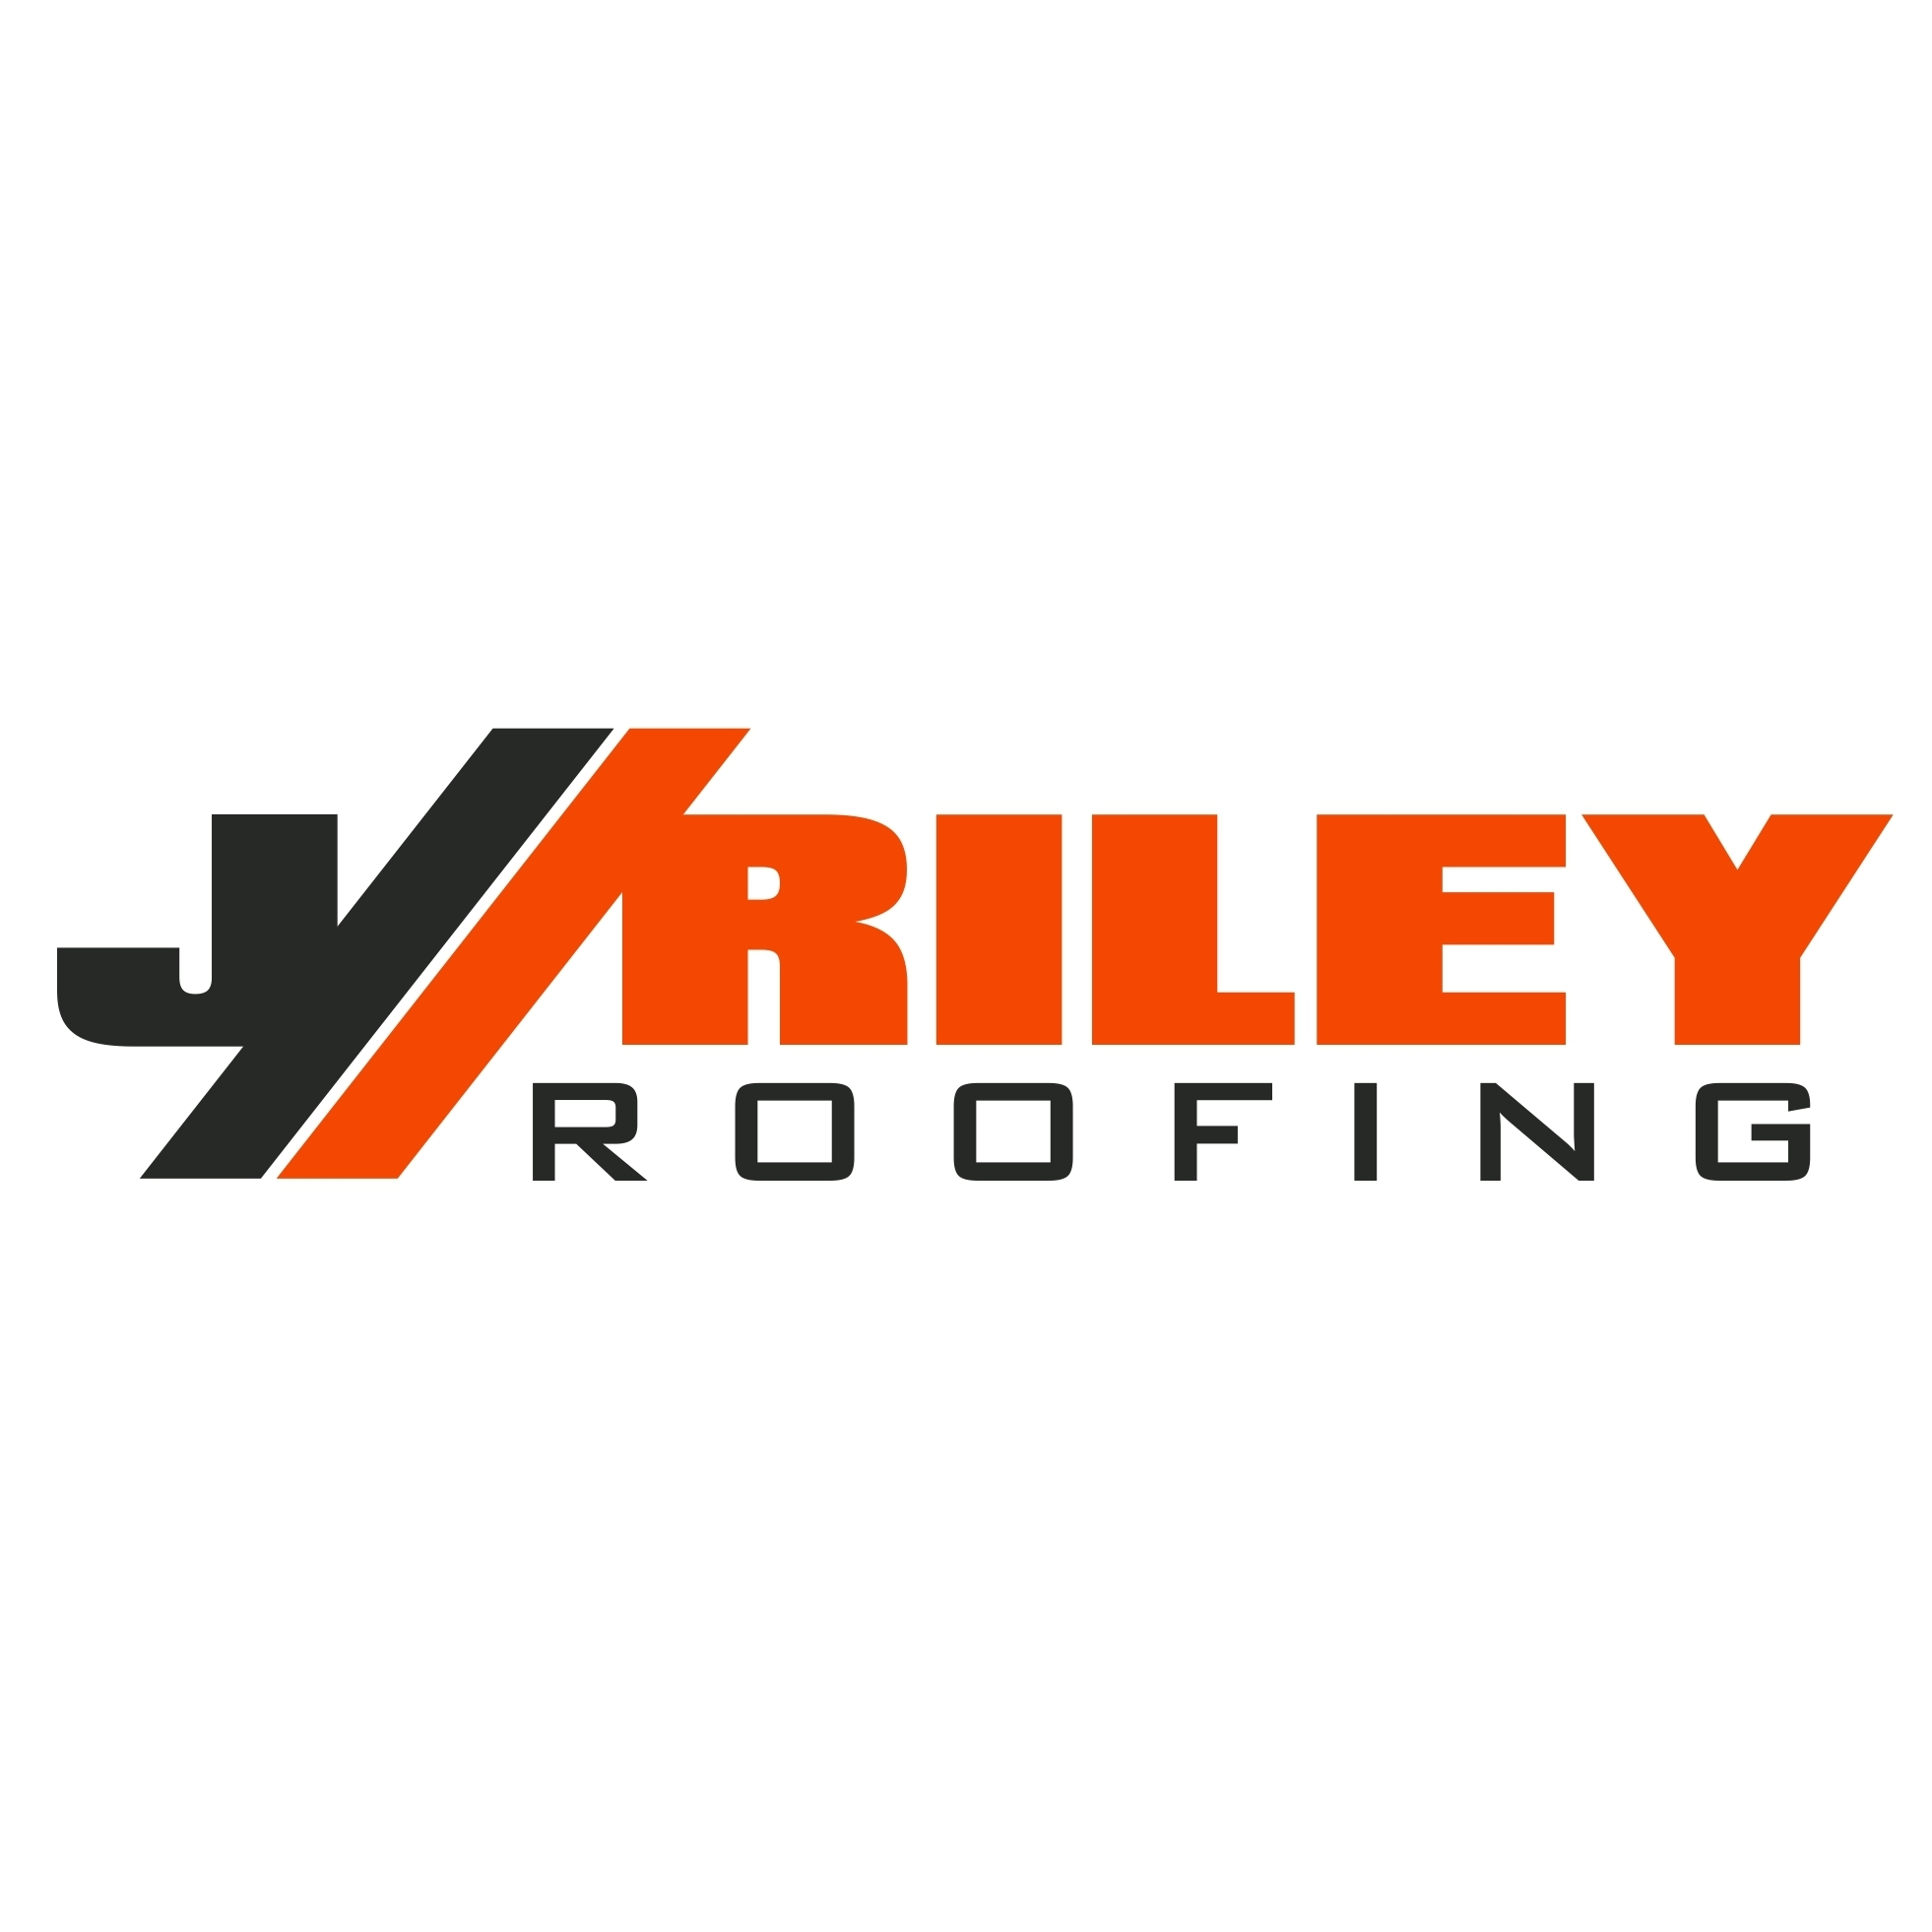 J Riley Roofing